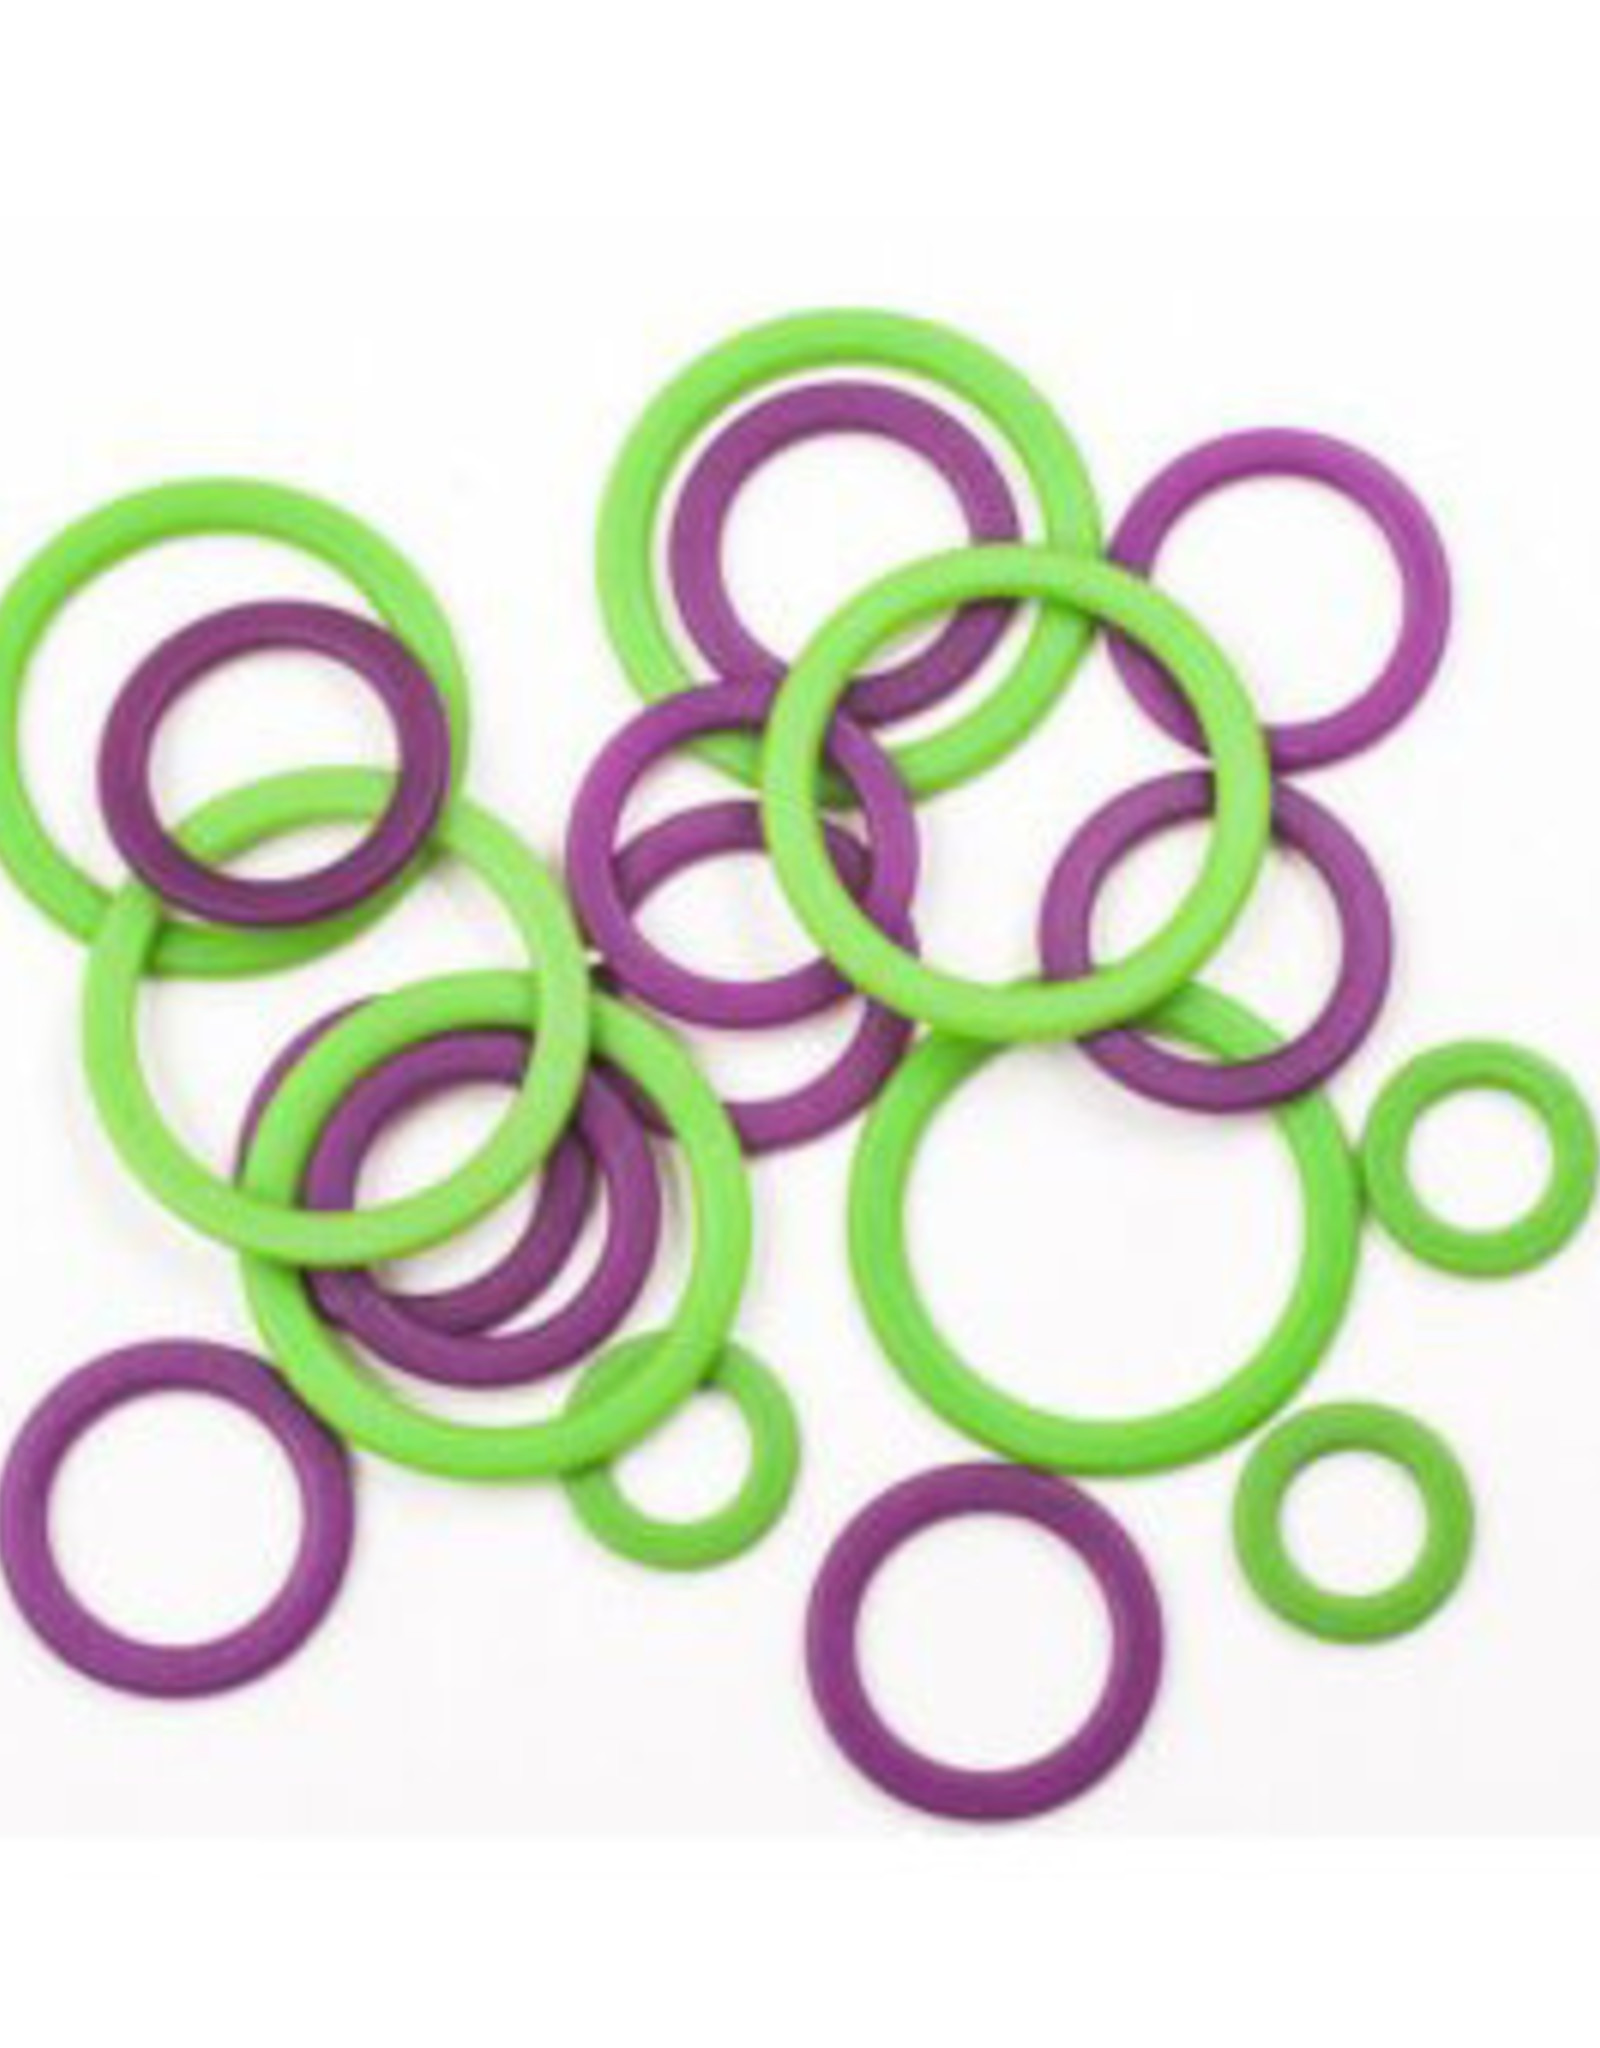 Stitch Ring Markers